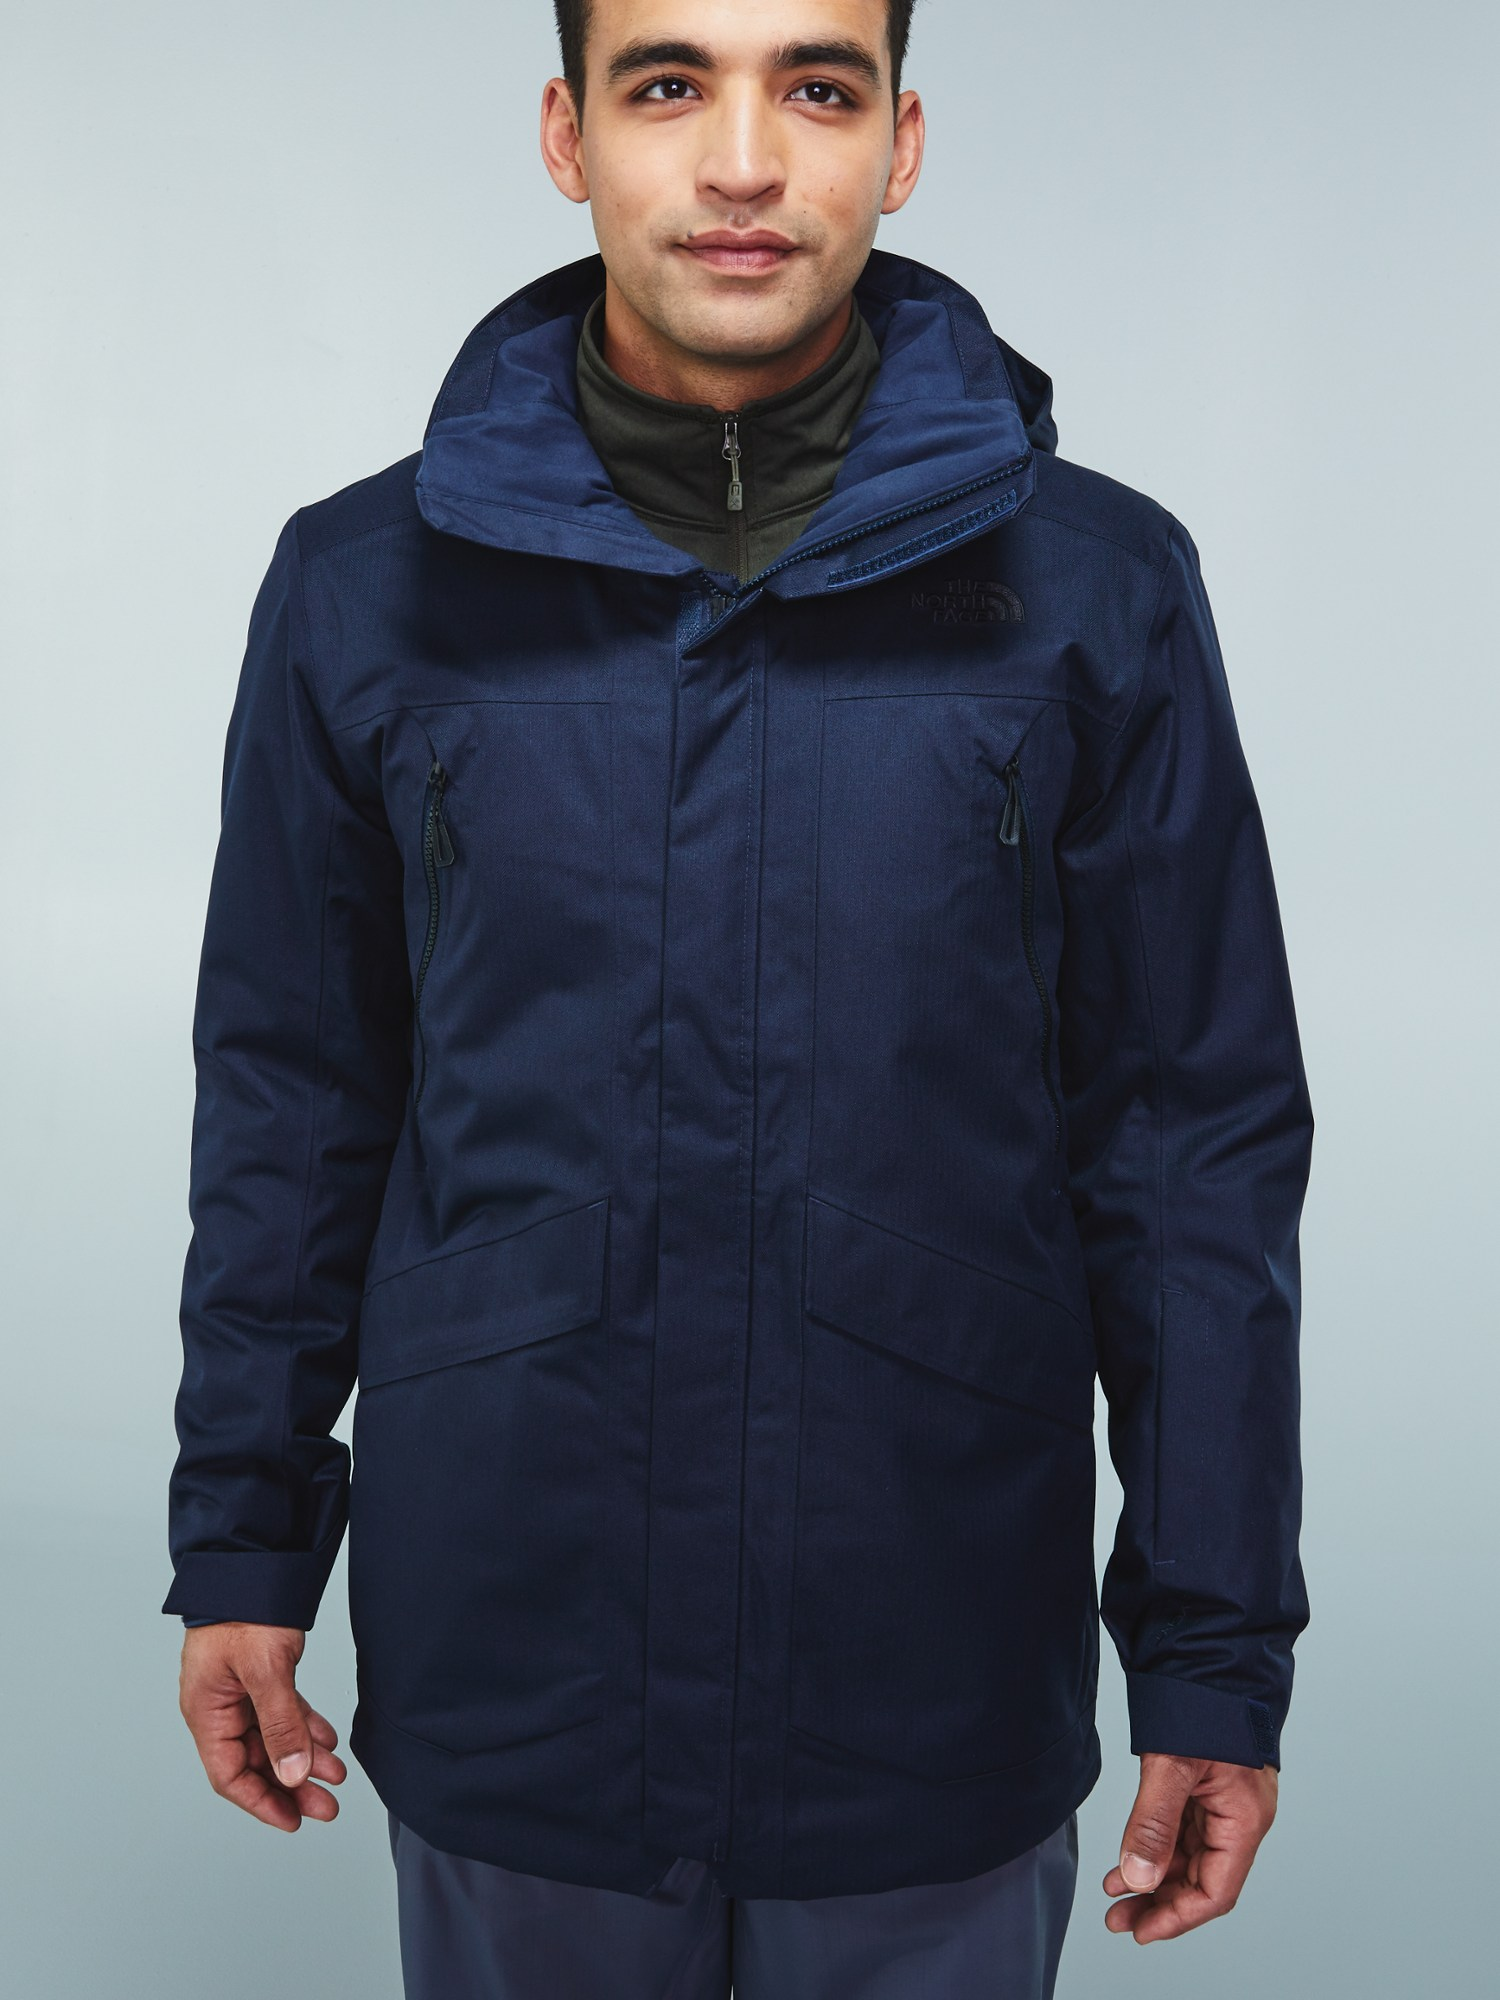 The North Face Gatekeeper Insulated Jacket - Men's